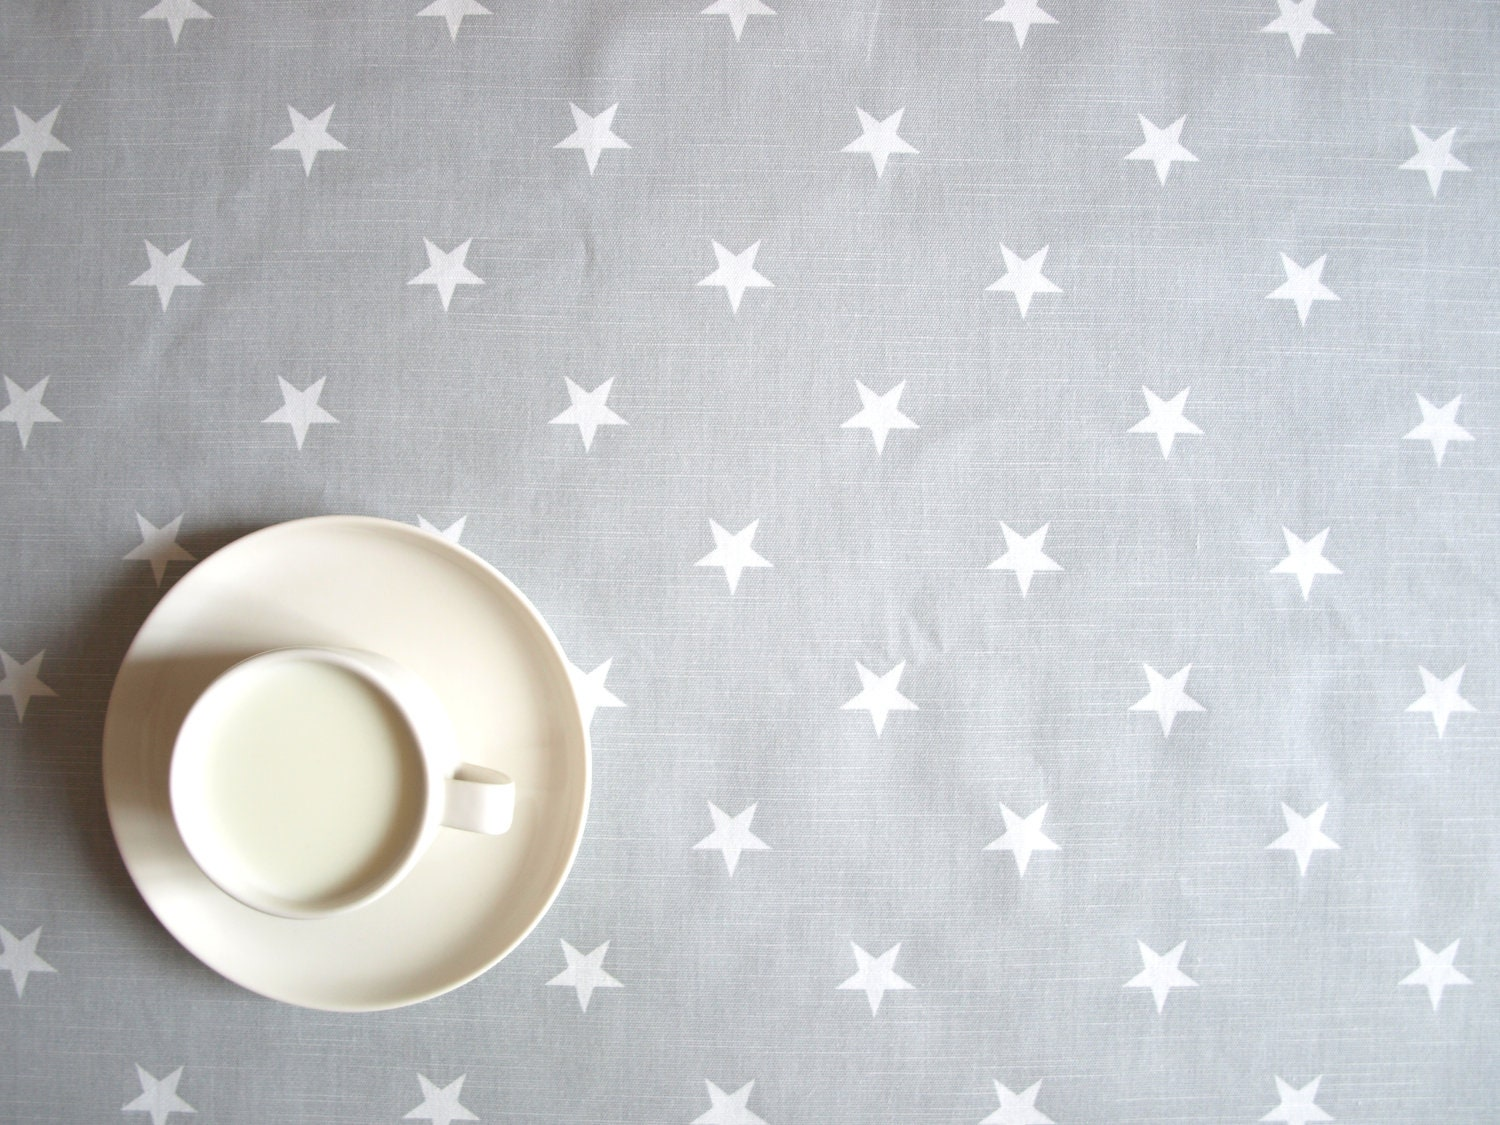 "Tablecloth grey with white stars 37""x 37"" or made to order your size, also napkins, table runner available, with GIFT - Dreamzzzzz"